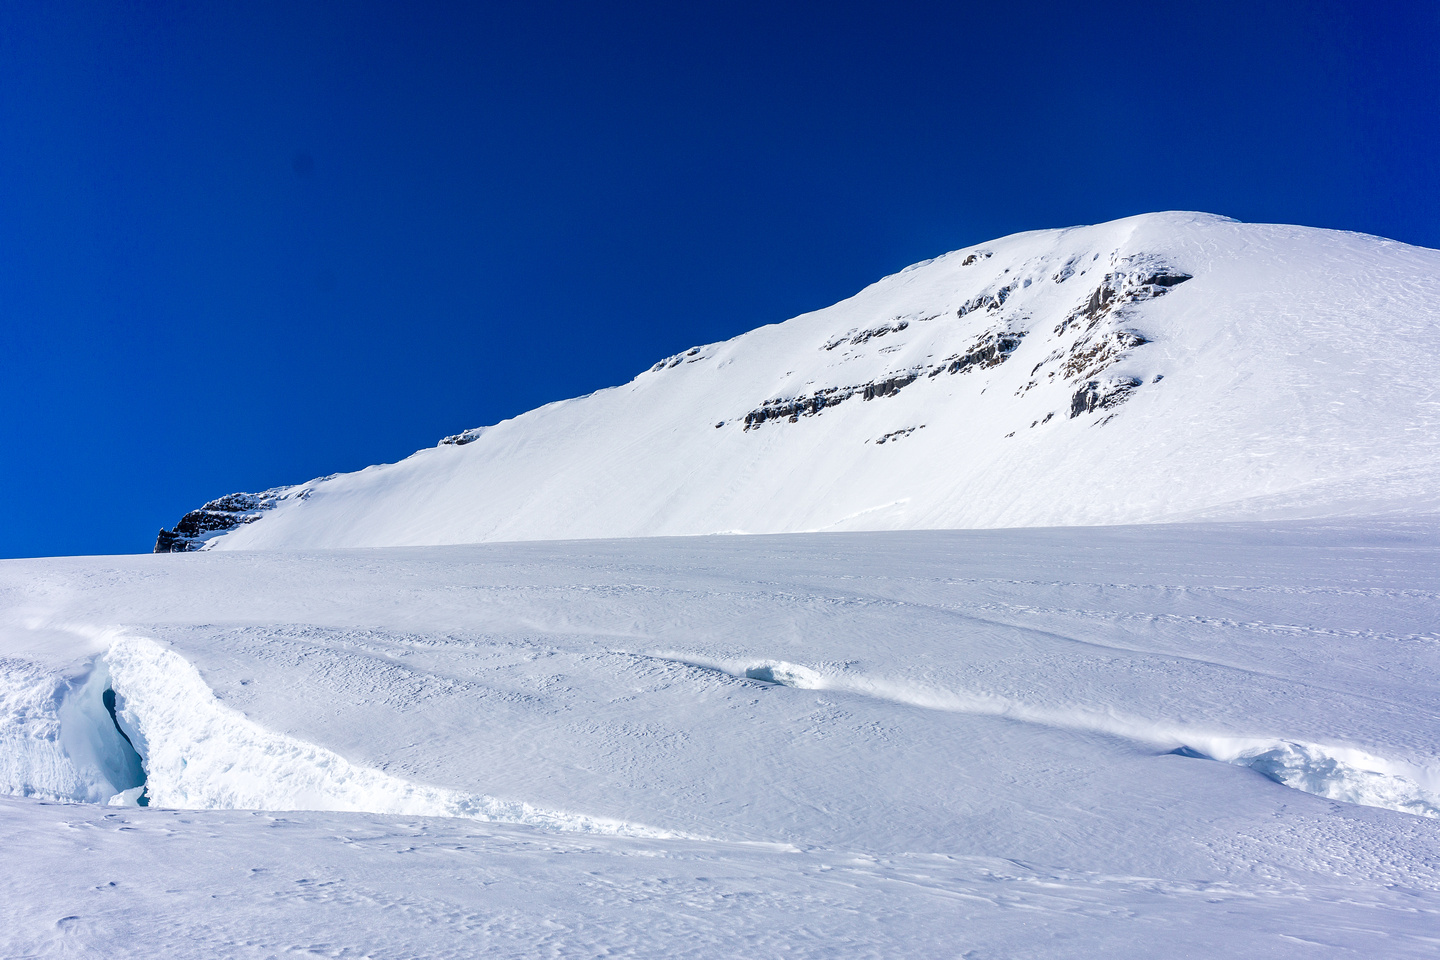 A nice-sized hole sitting below the normal ascent route (east ridge) on Columbia.